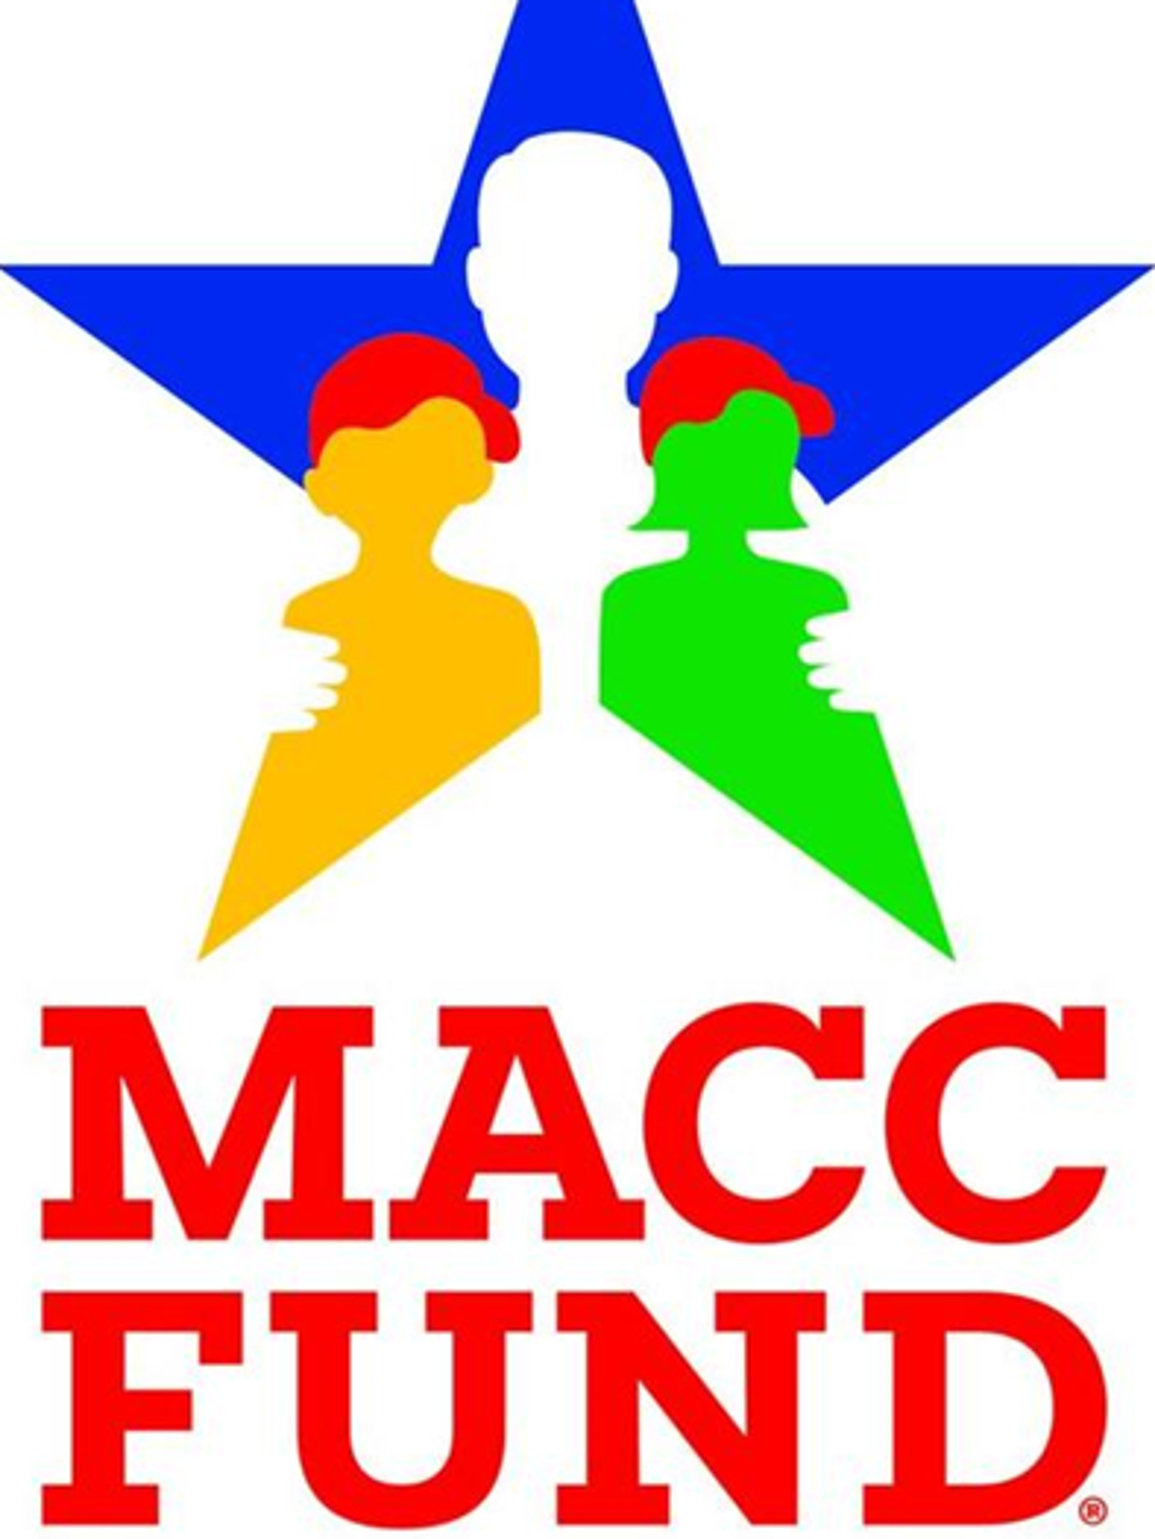 Hanson still has MACC Fund posters up in her office.